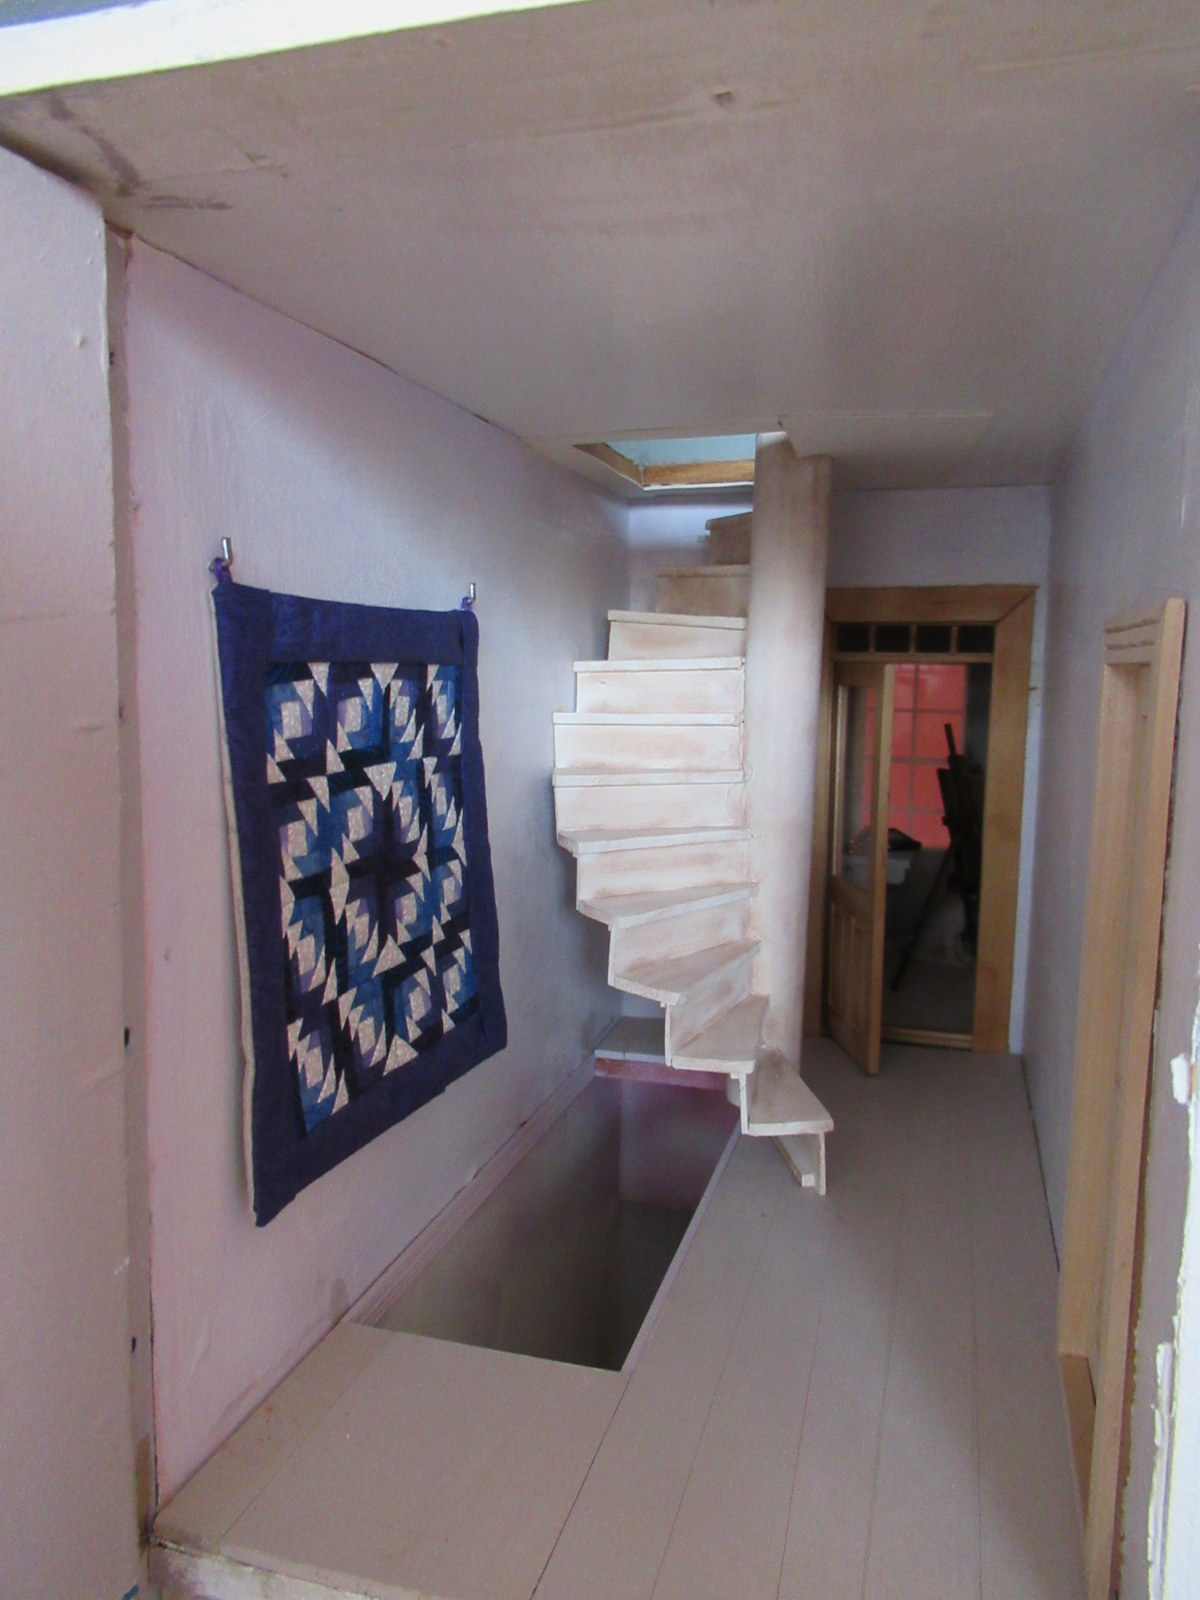 Margriet 39 s miniatures m huis trap stairs - Huis trap ...